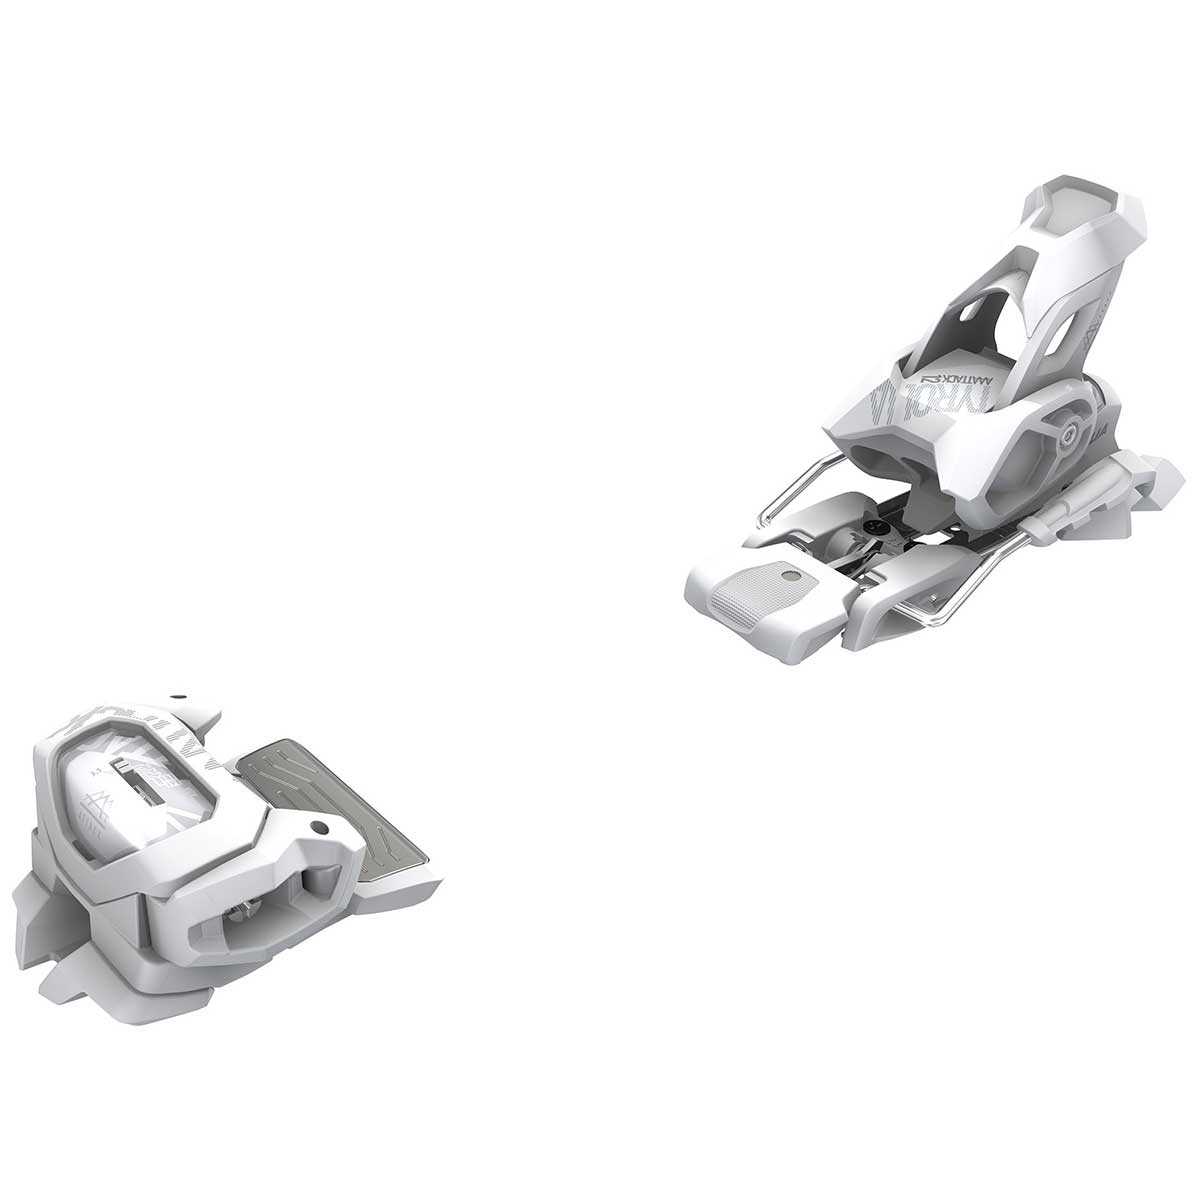 Tyrolia Attack2 12 GW ski binding in matte white